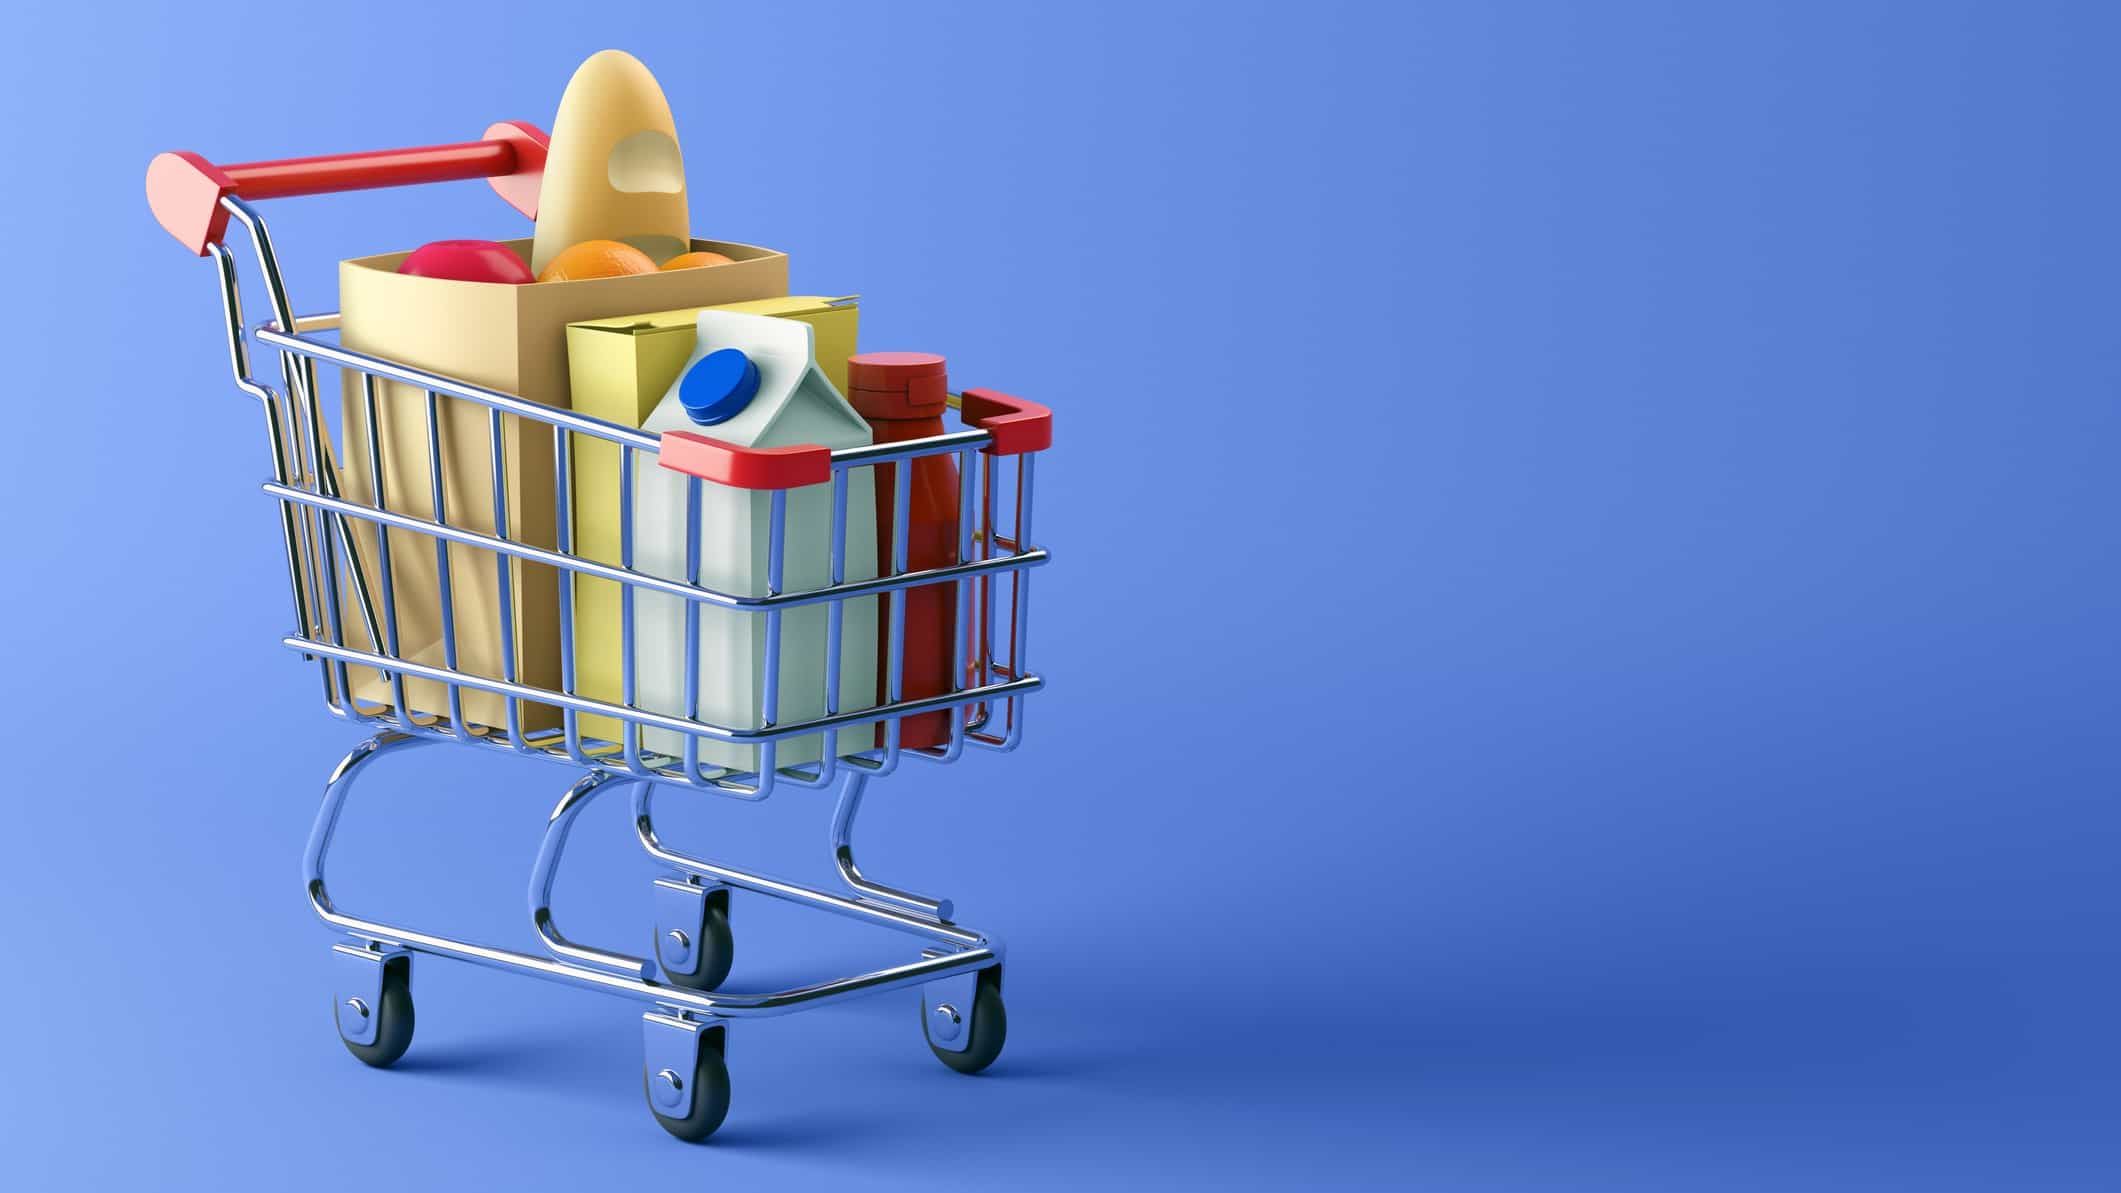 asx consumer staple shares represented by shopping trolley filled with essential grocery items